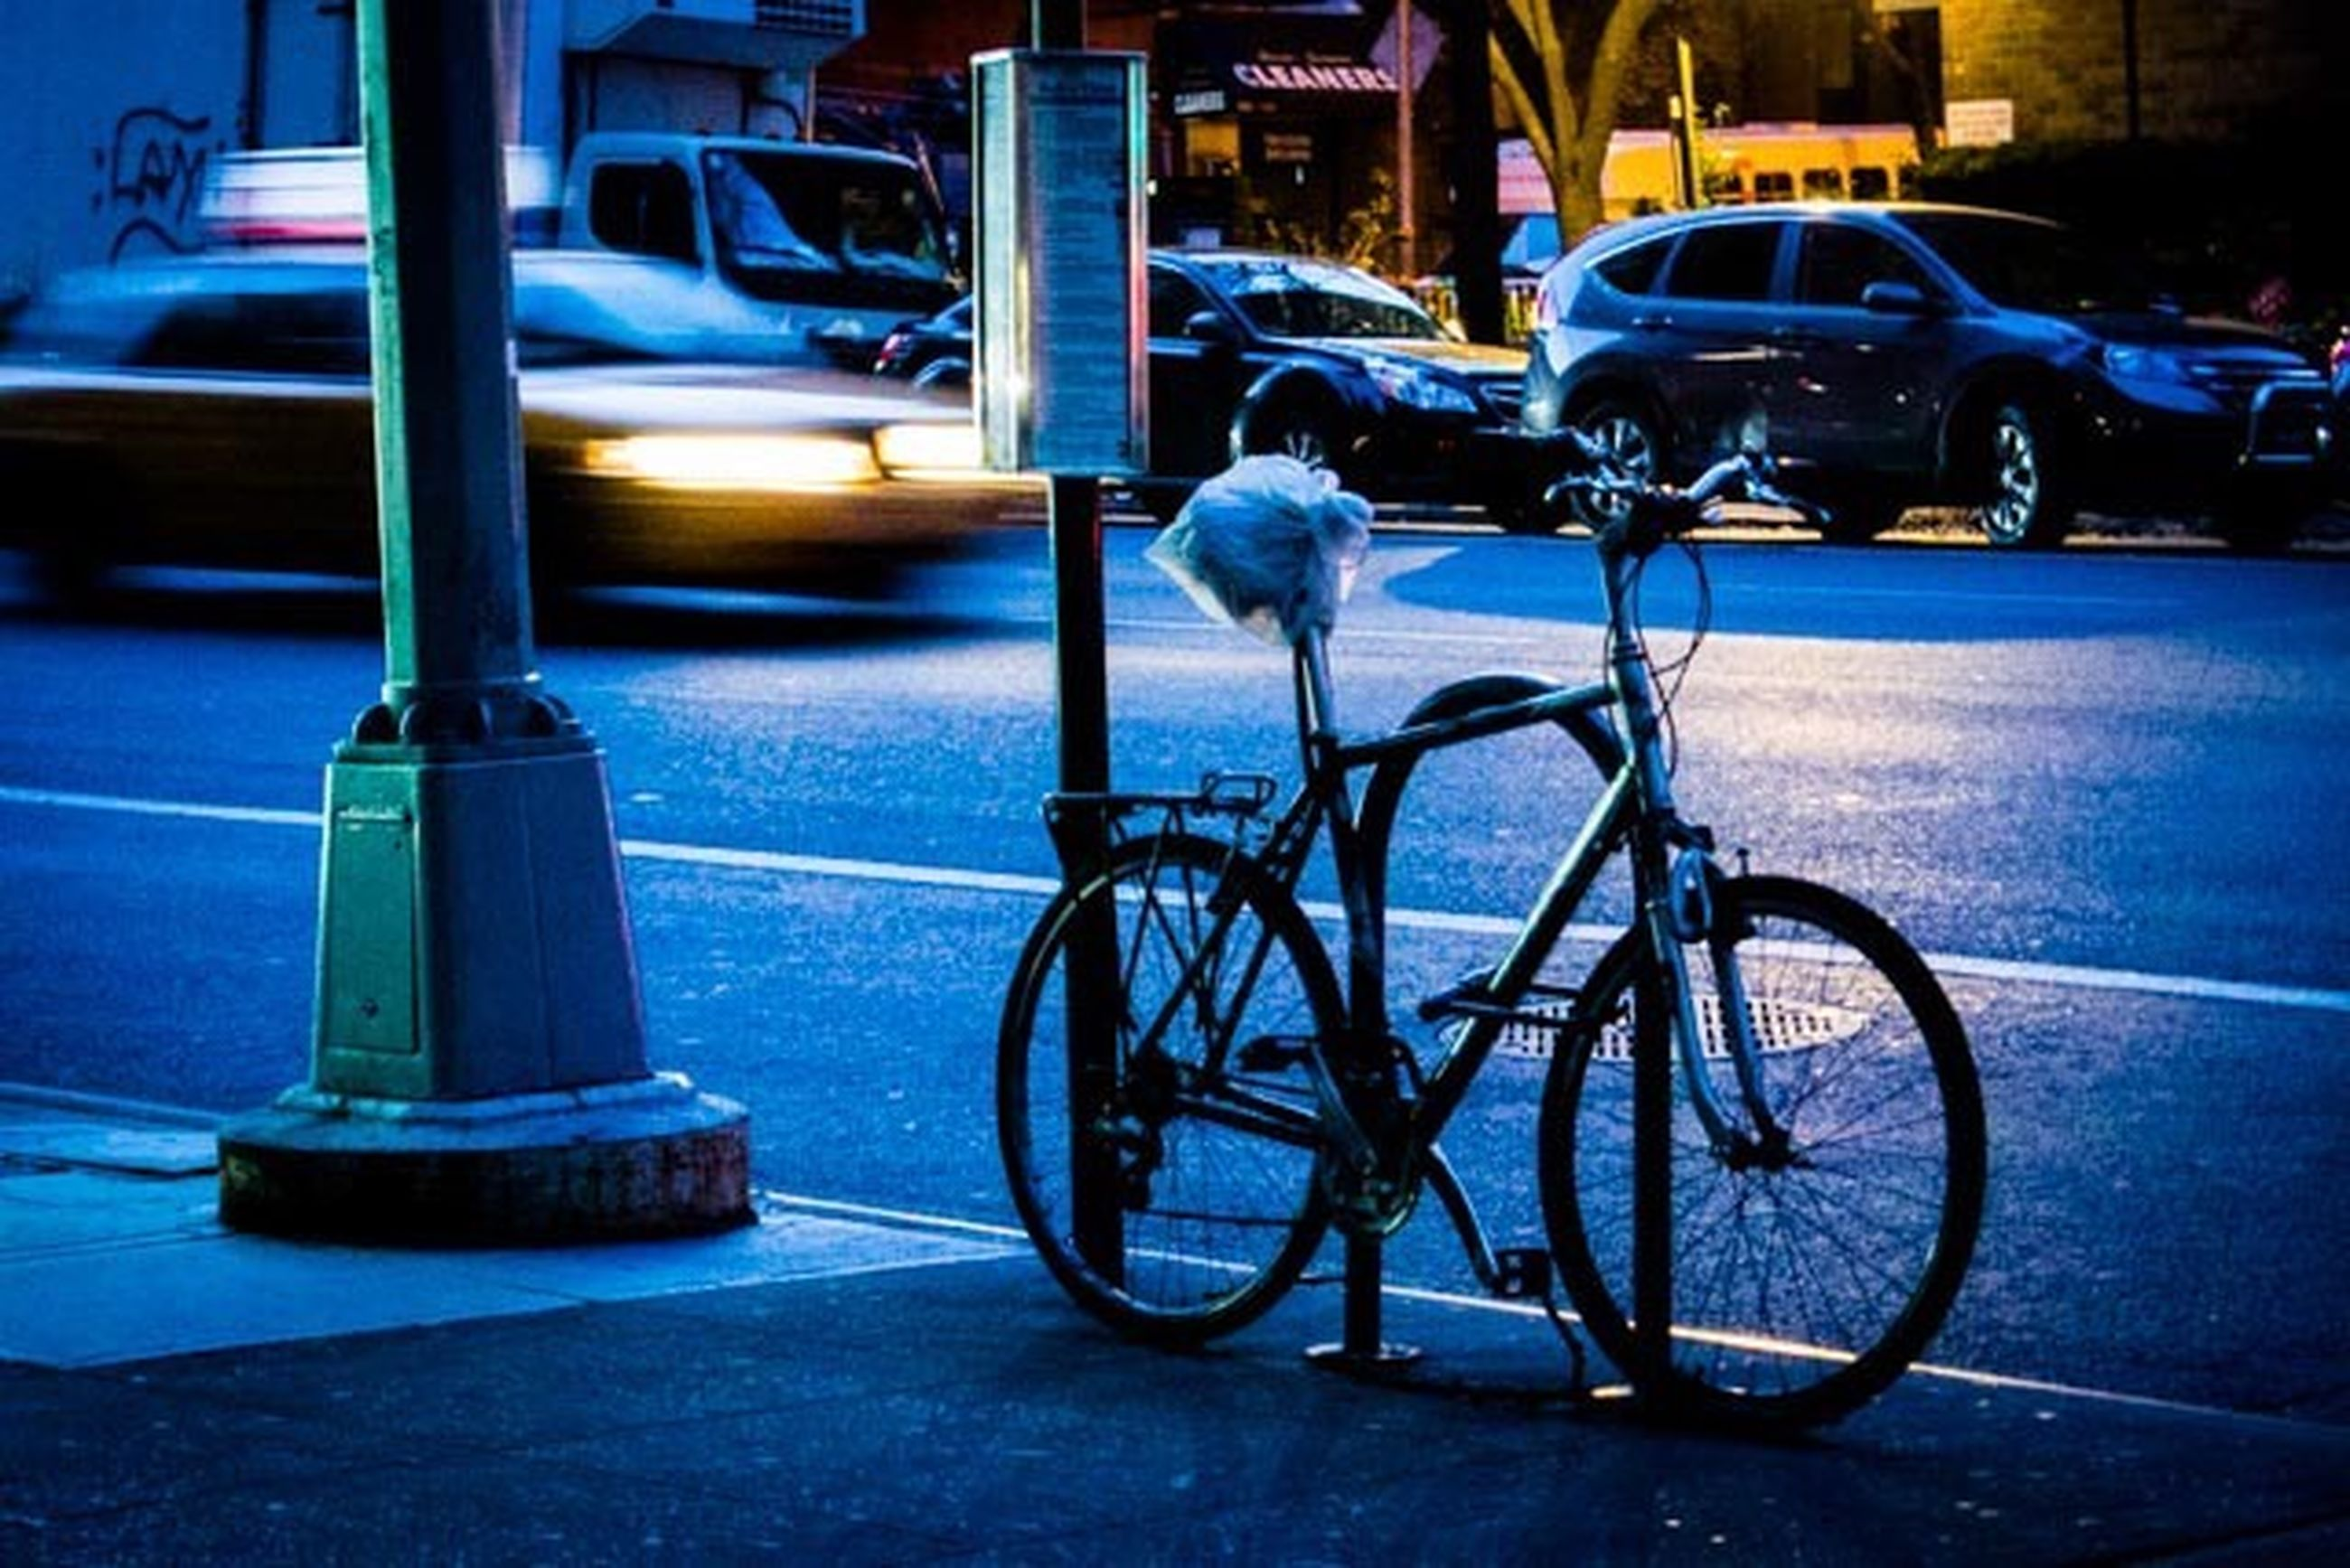 transportation, mode of transport, land vehicle, bicycle, stationary, parked, parking, street, car, building exterior, blue, sidewalk, architecture, built structure, city, parking lot, road, outdoors, no people, travel